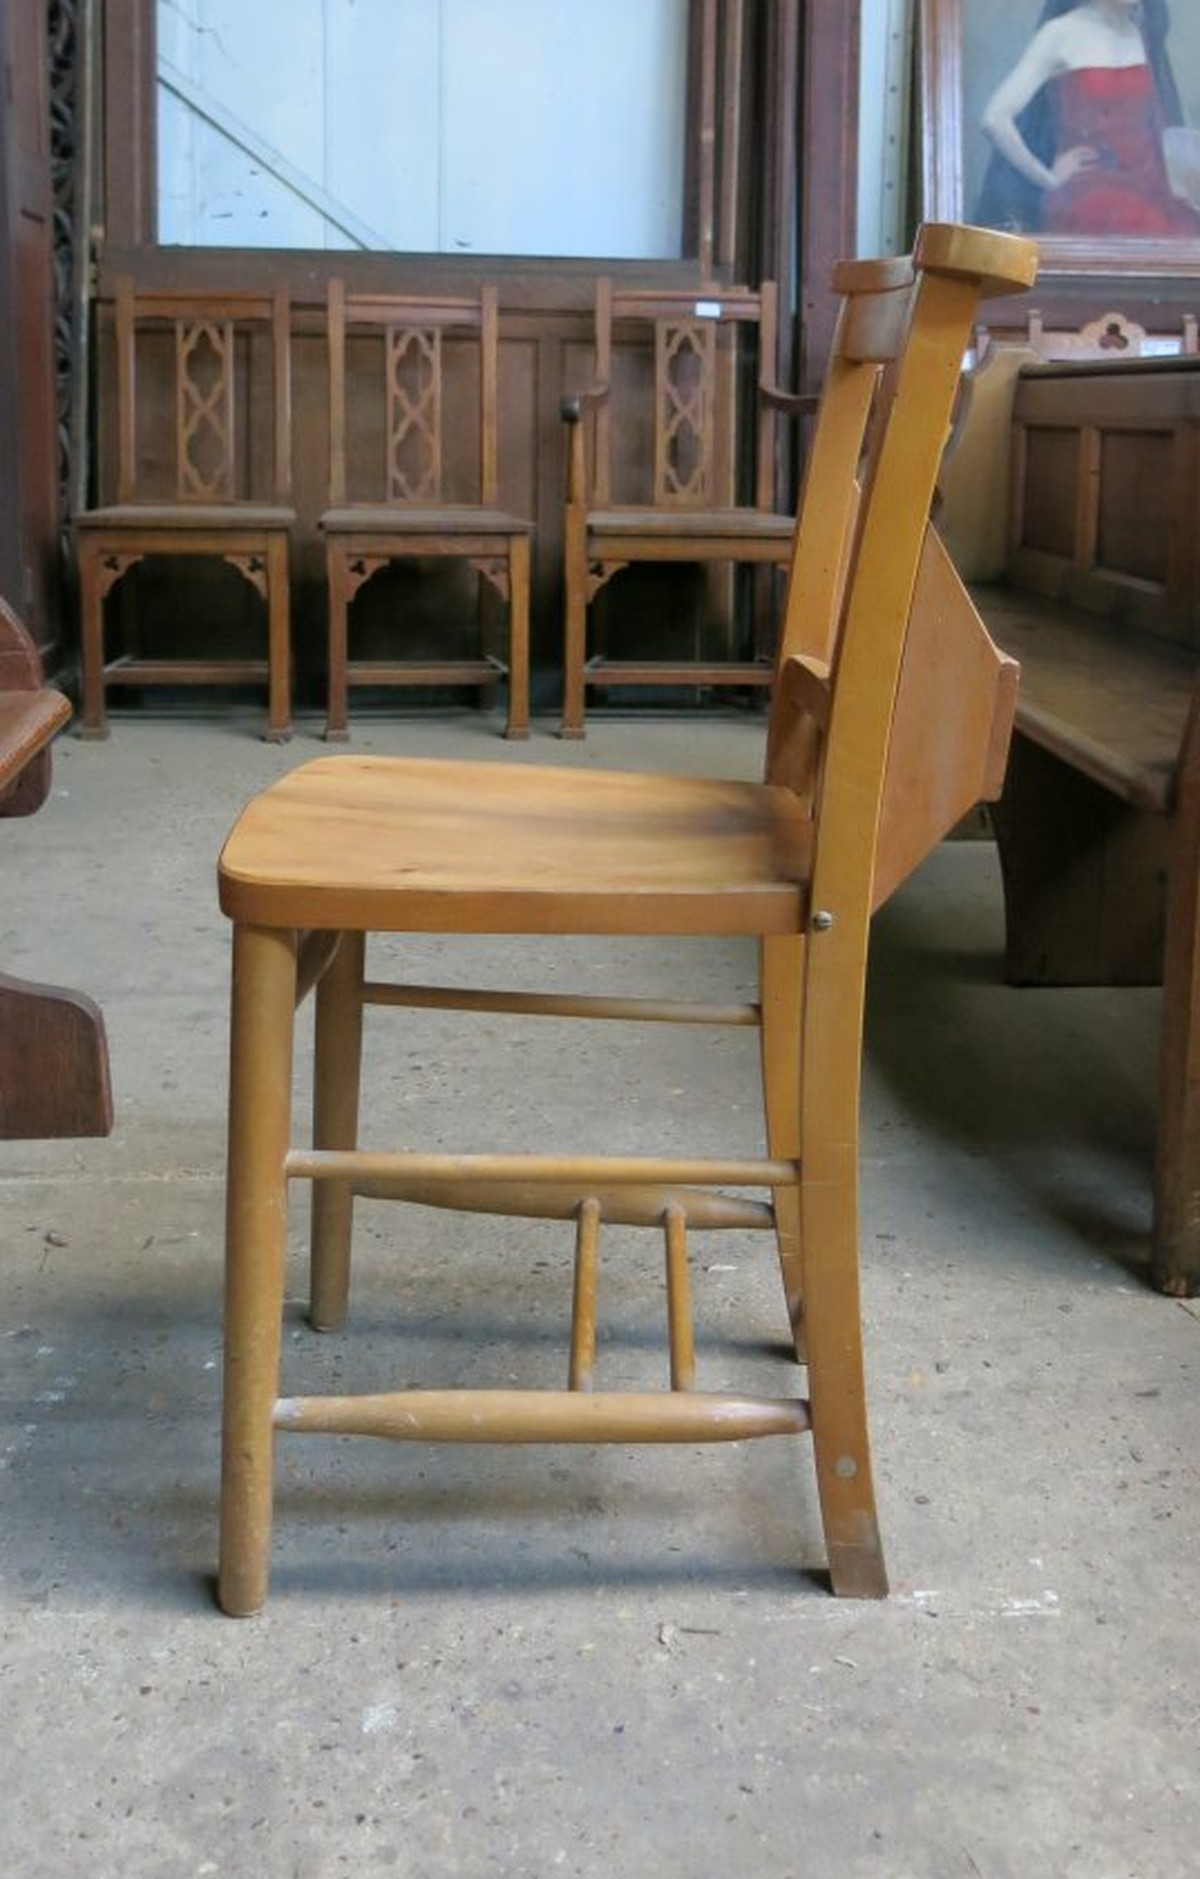 Secondhand Vintage and Reclaimed Church